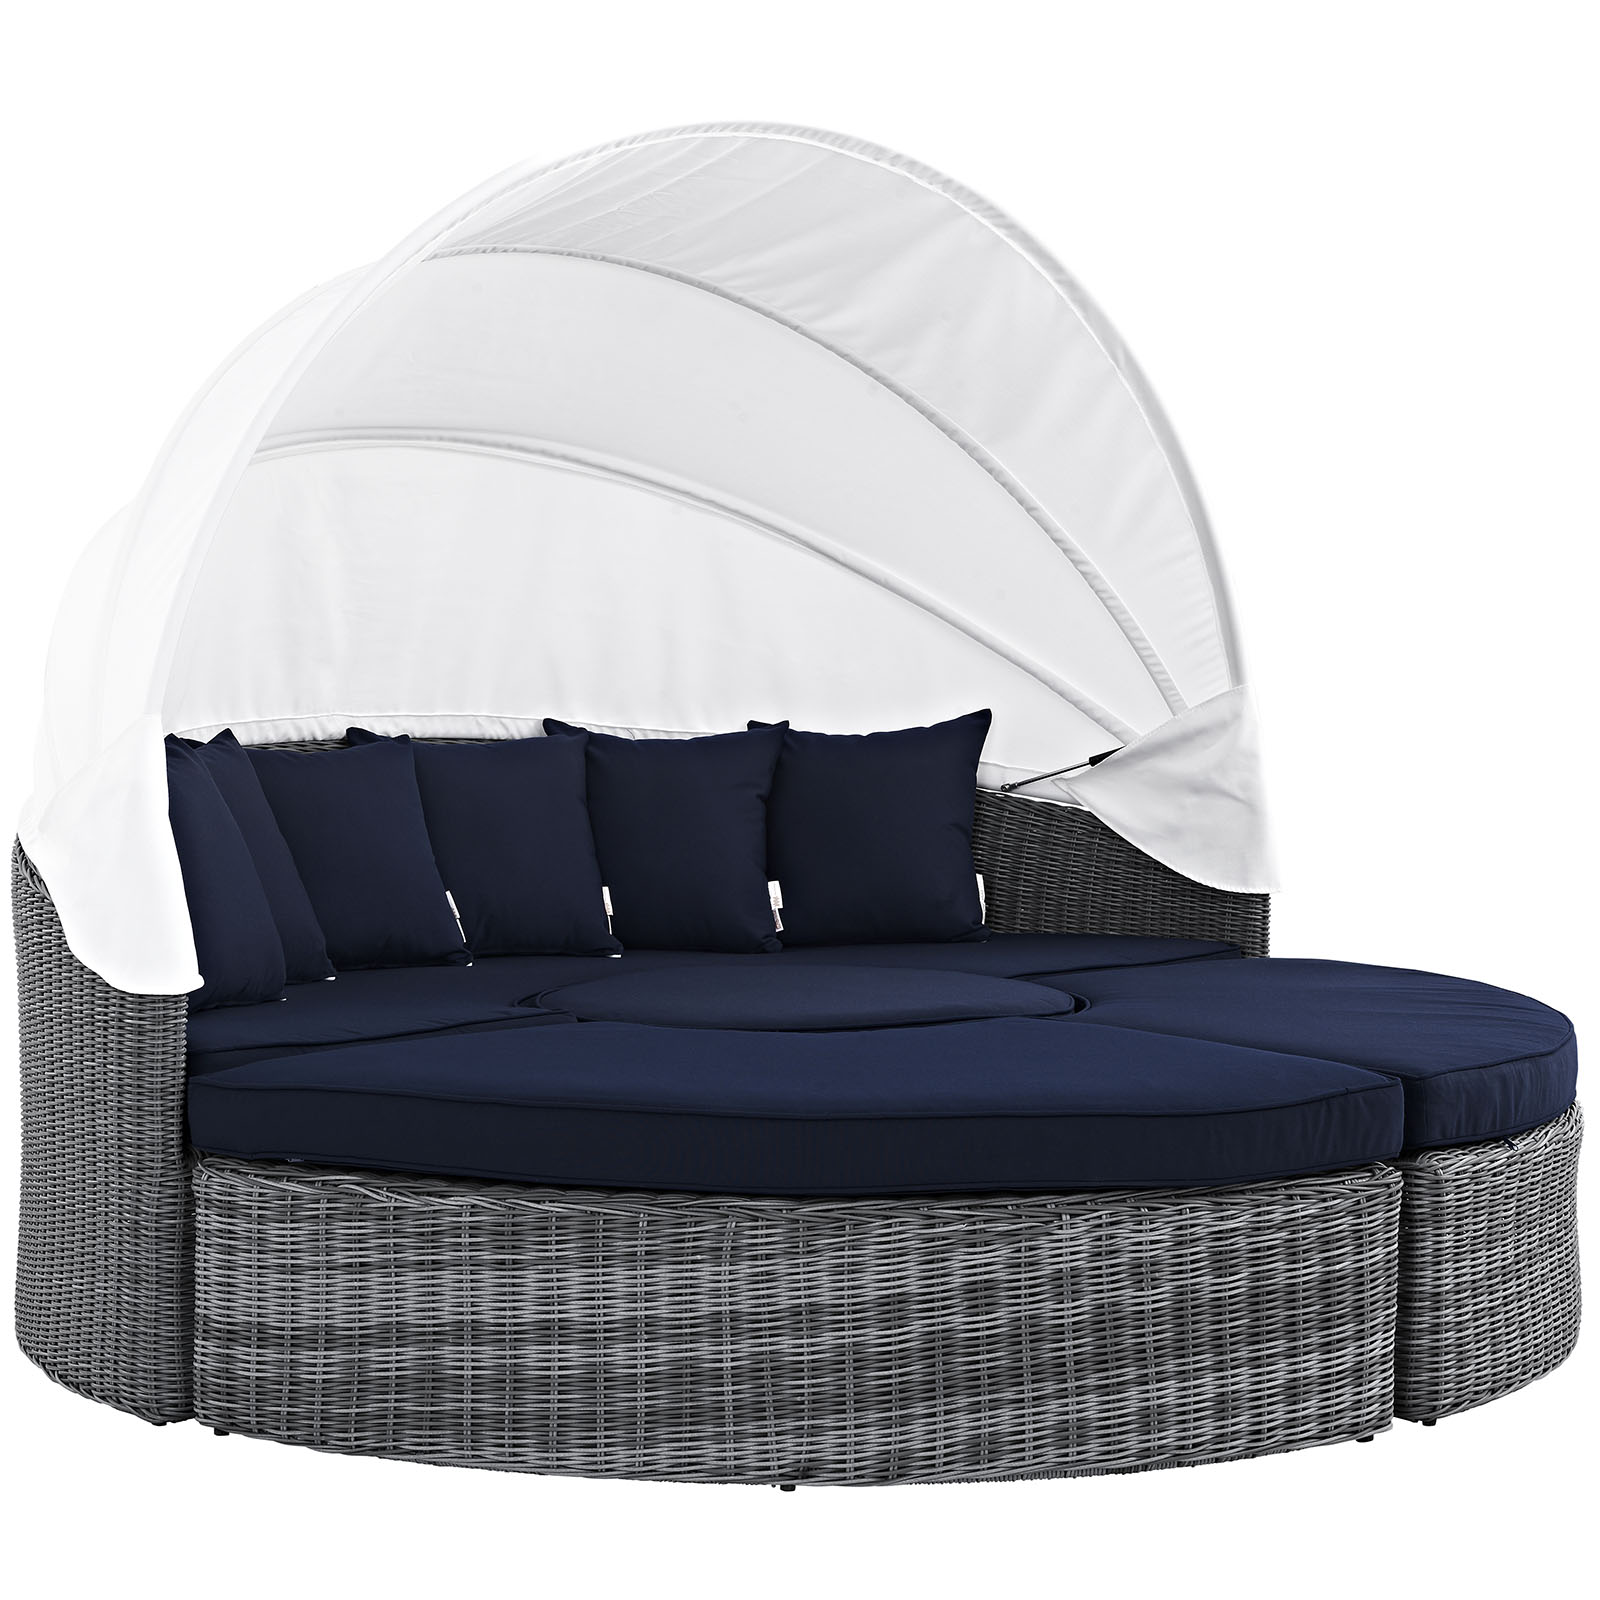 Outdoor Daybeds For Sale Summon Canopy Outdoor Patio Sunbrella Daybed In Canvas